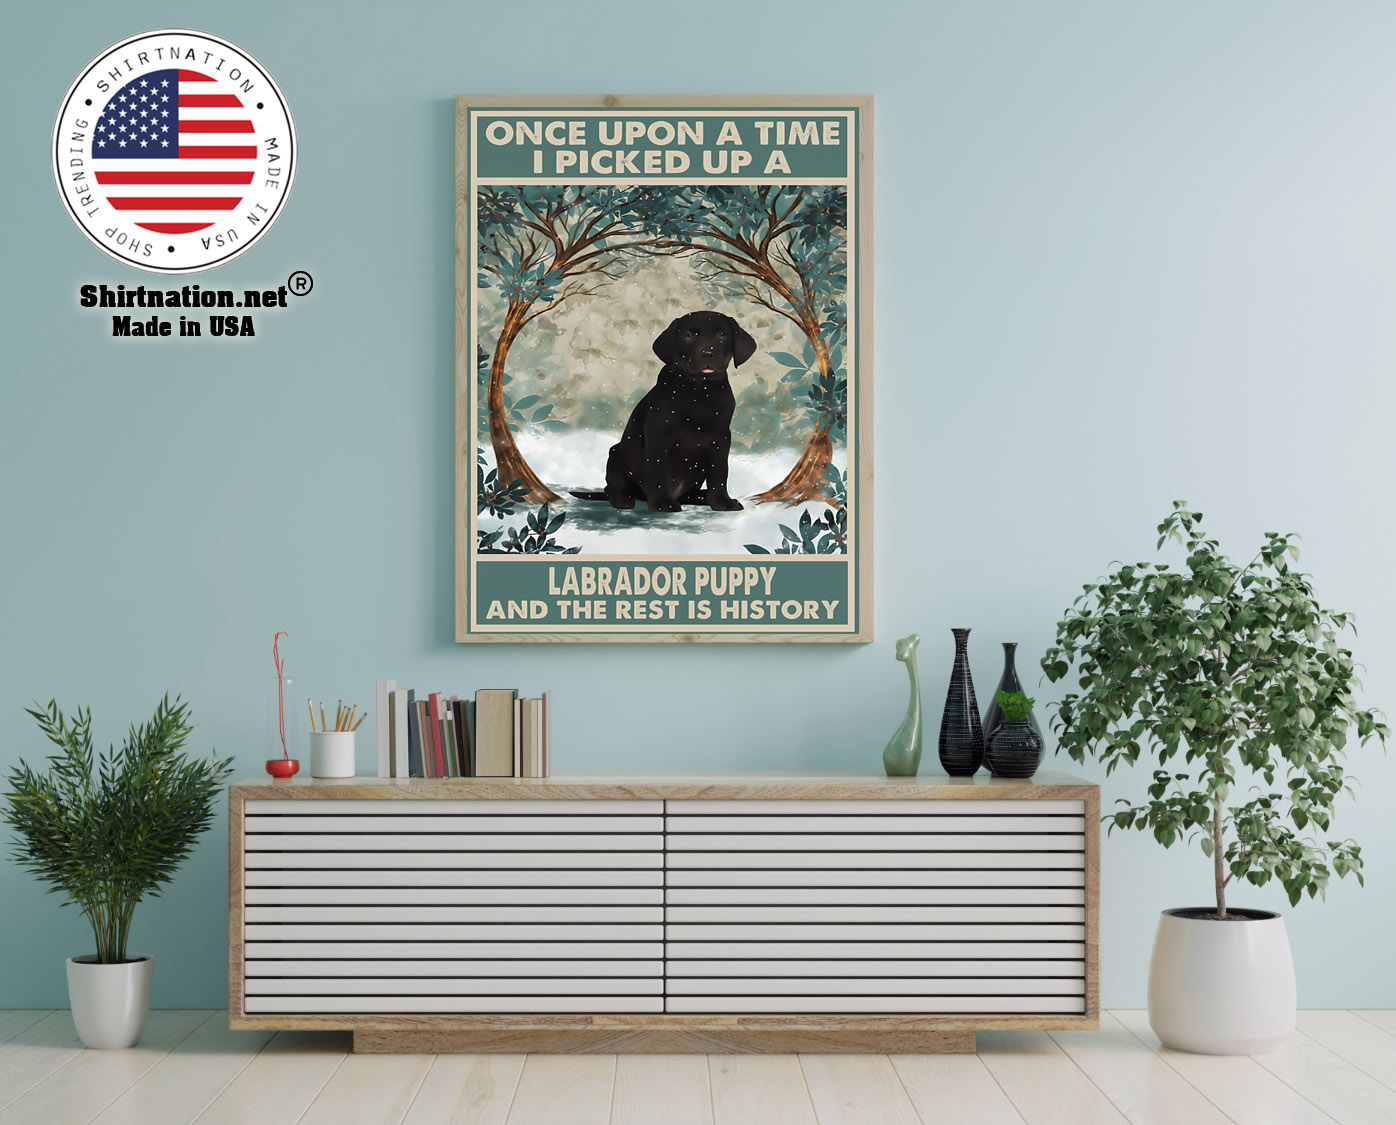 Once upon a time I picked up a labrador puppy and the rest is history poster 12